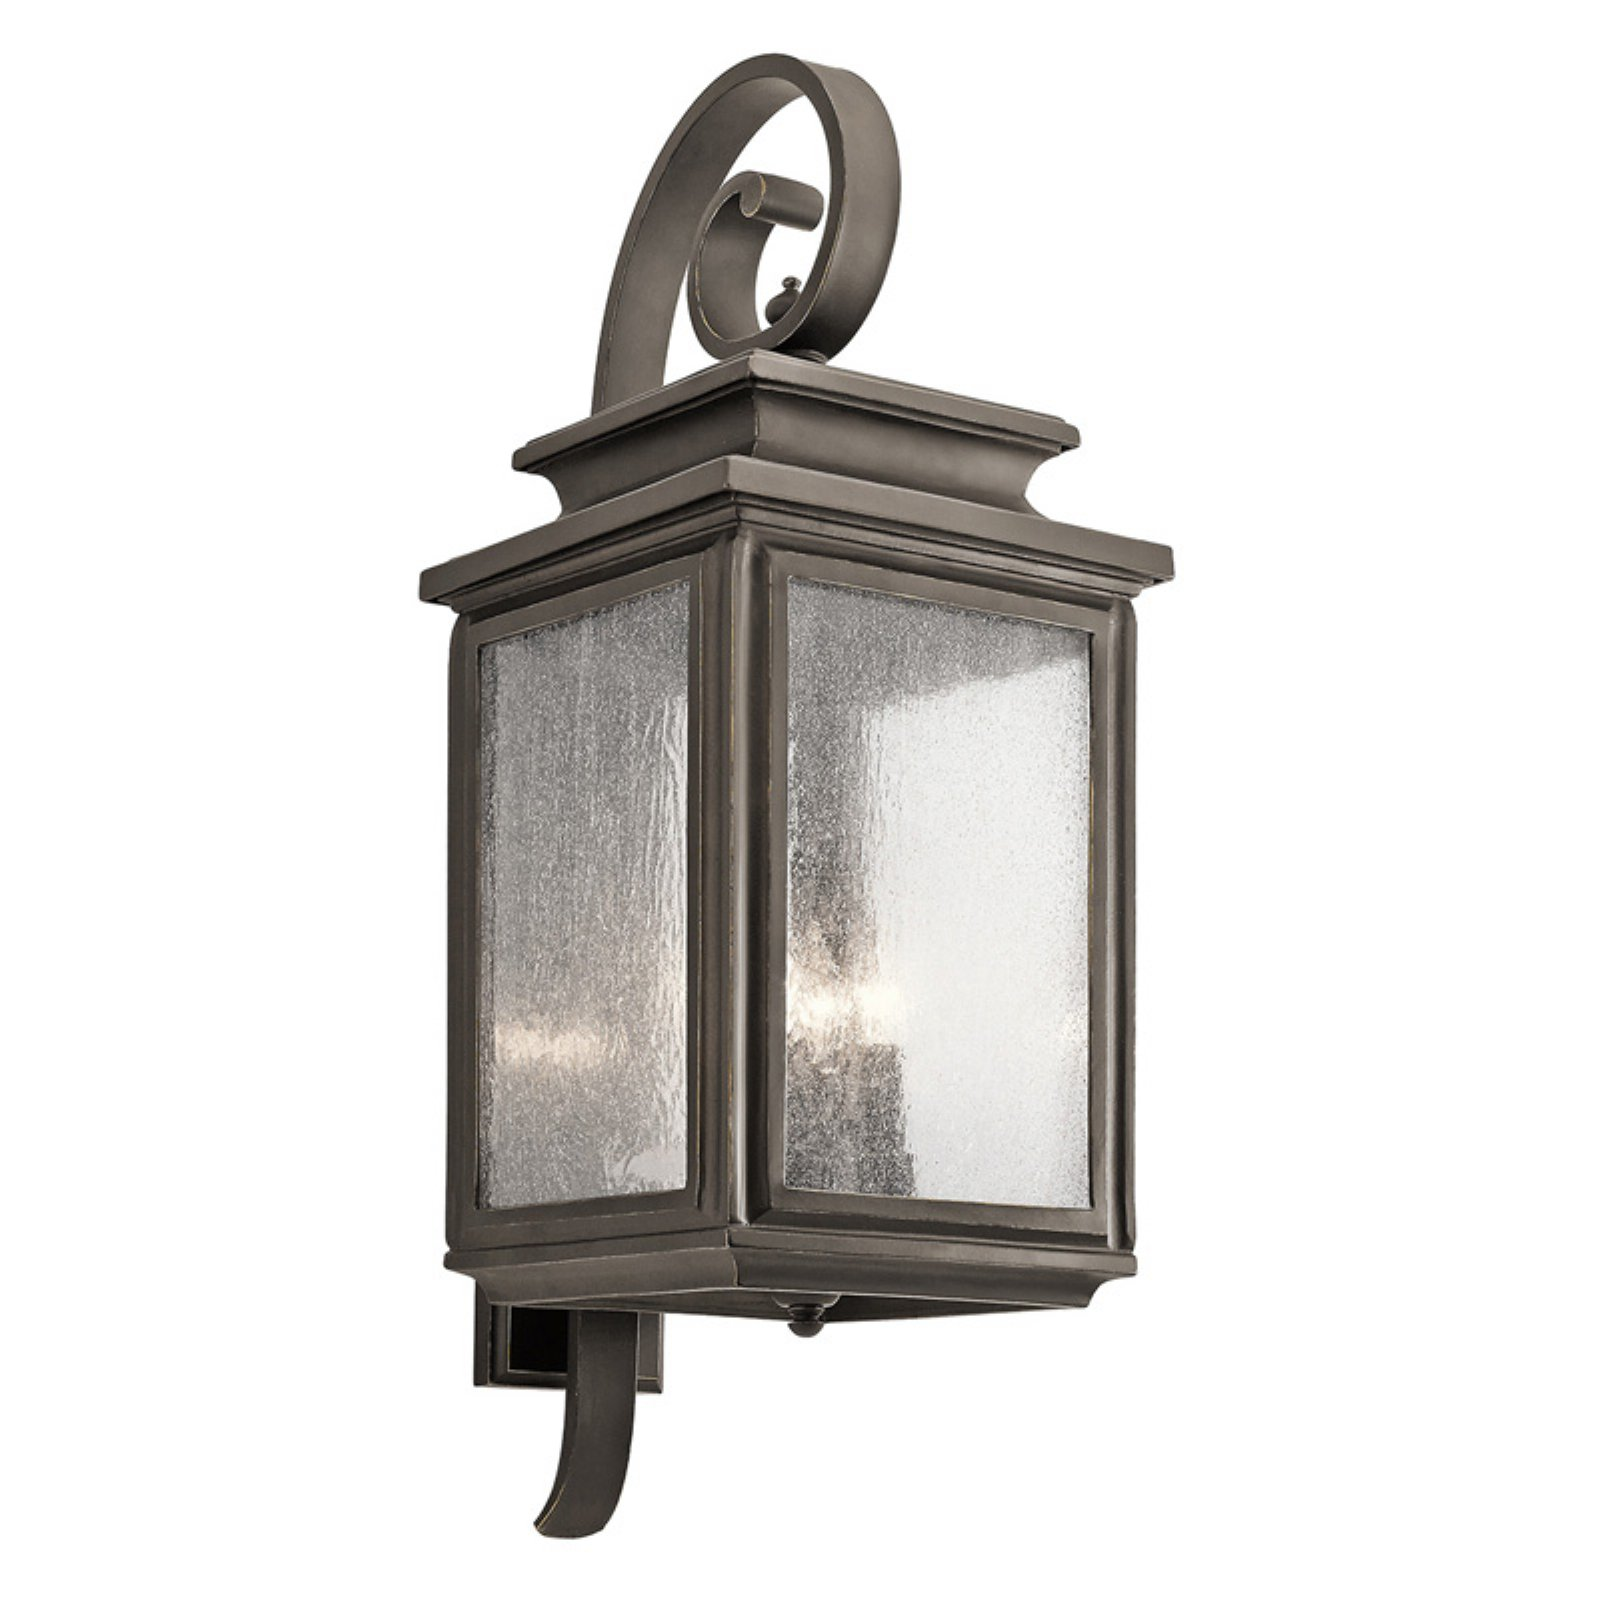 Kichler Wiscombe Park 49504 Outdoor Wall Light